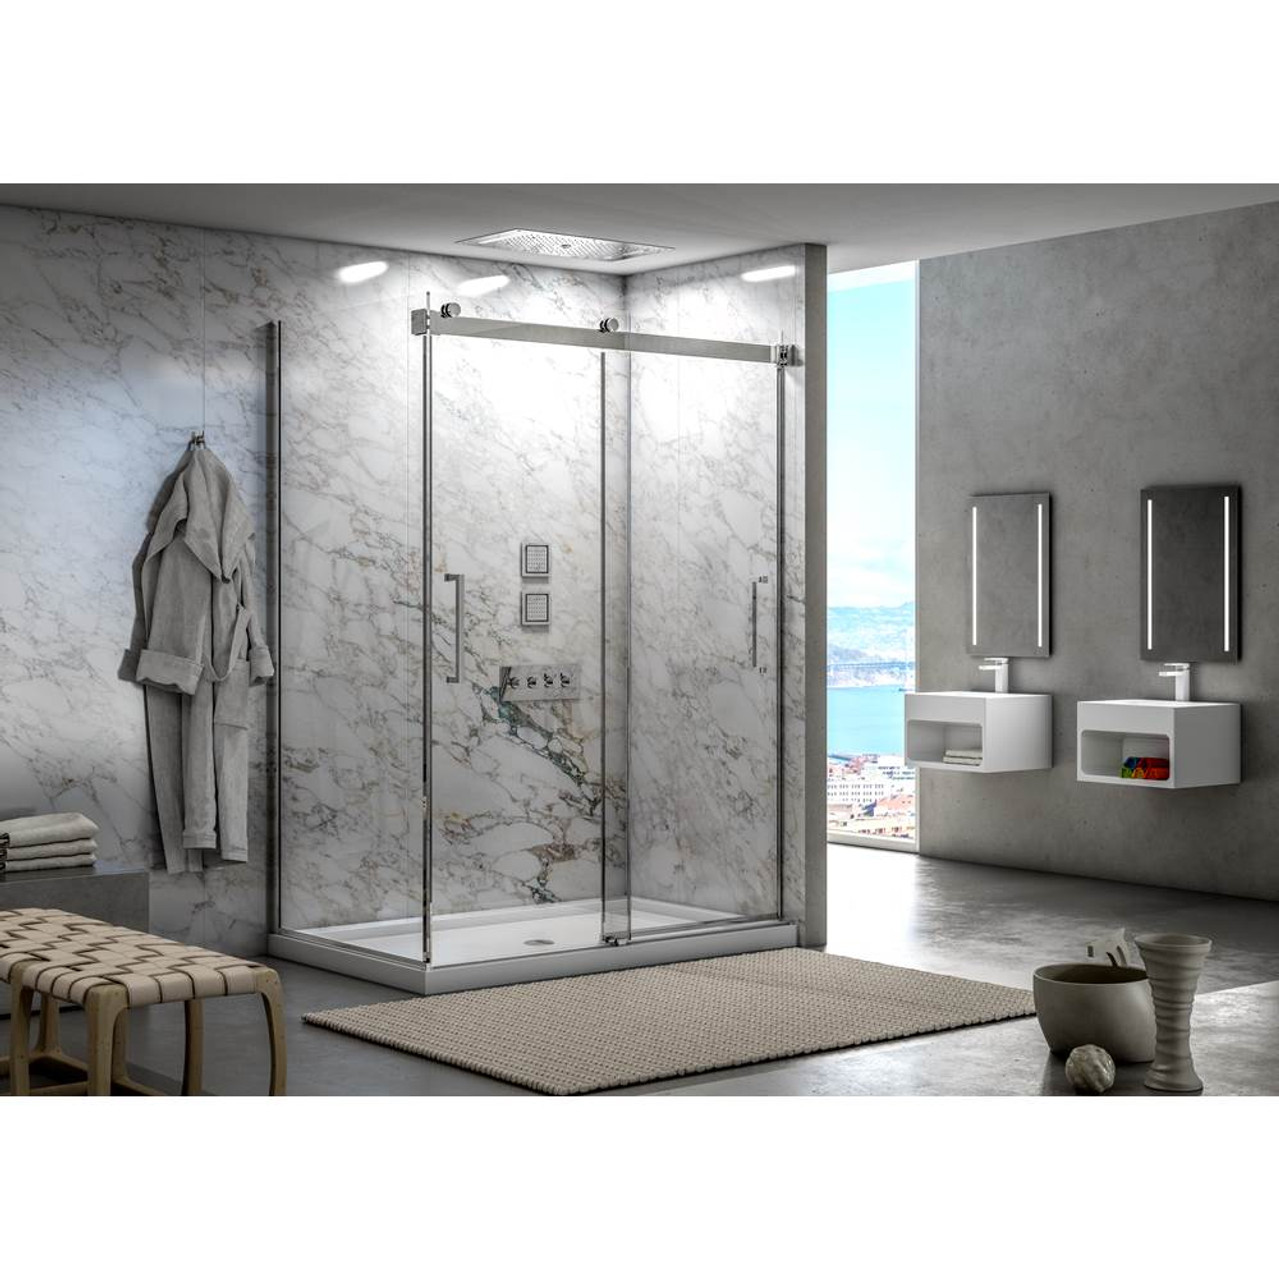 Fleurco Mercury 48 2 Sided Frameless Sliding Doors With Return Panel Brushed Nickel